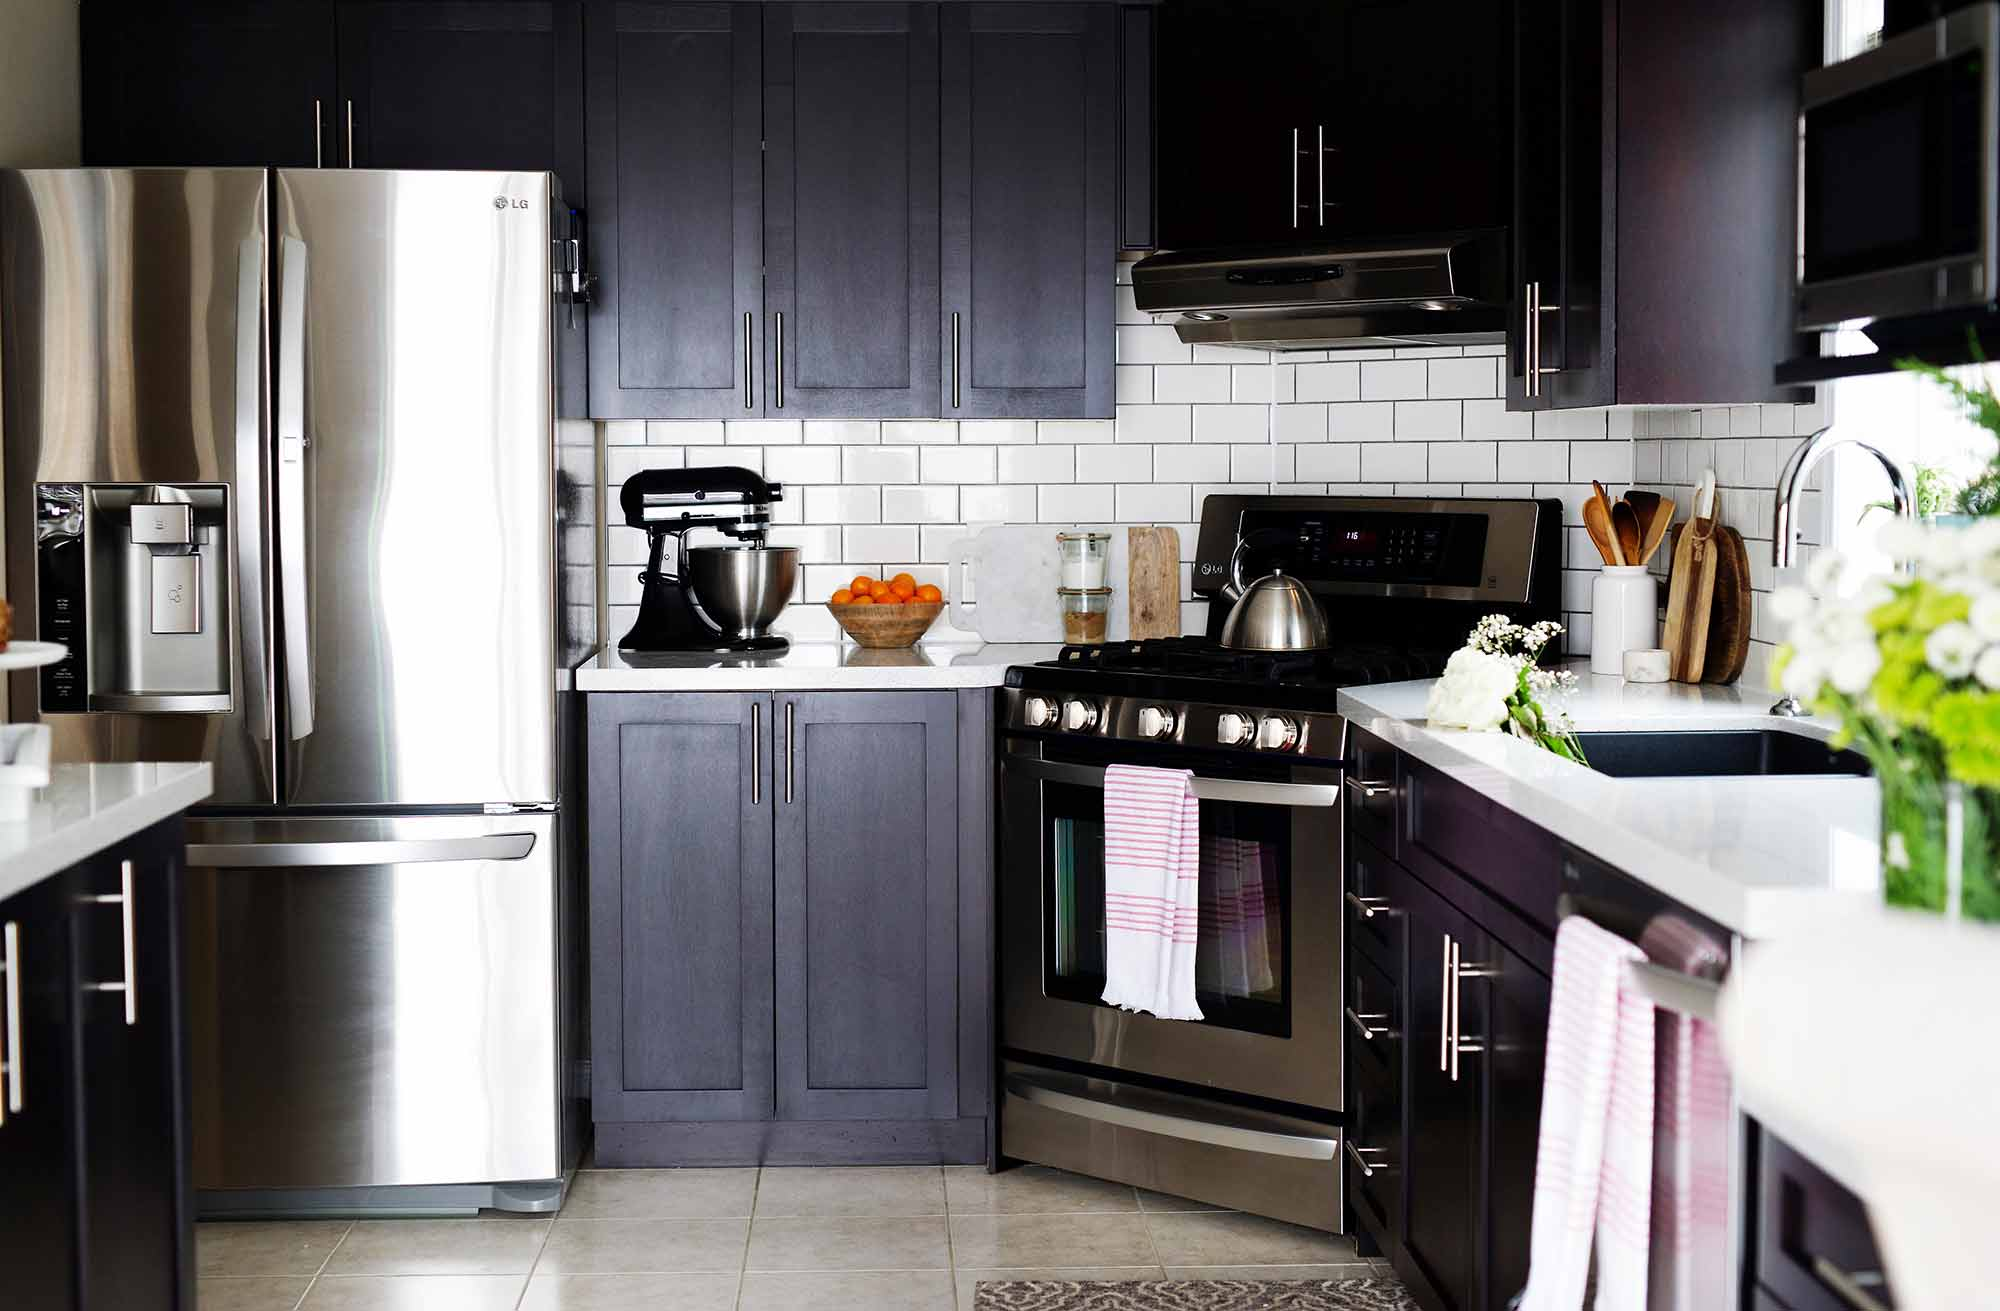 Renuit Kitchen Makeover with Home Depot